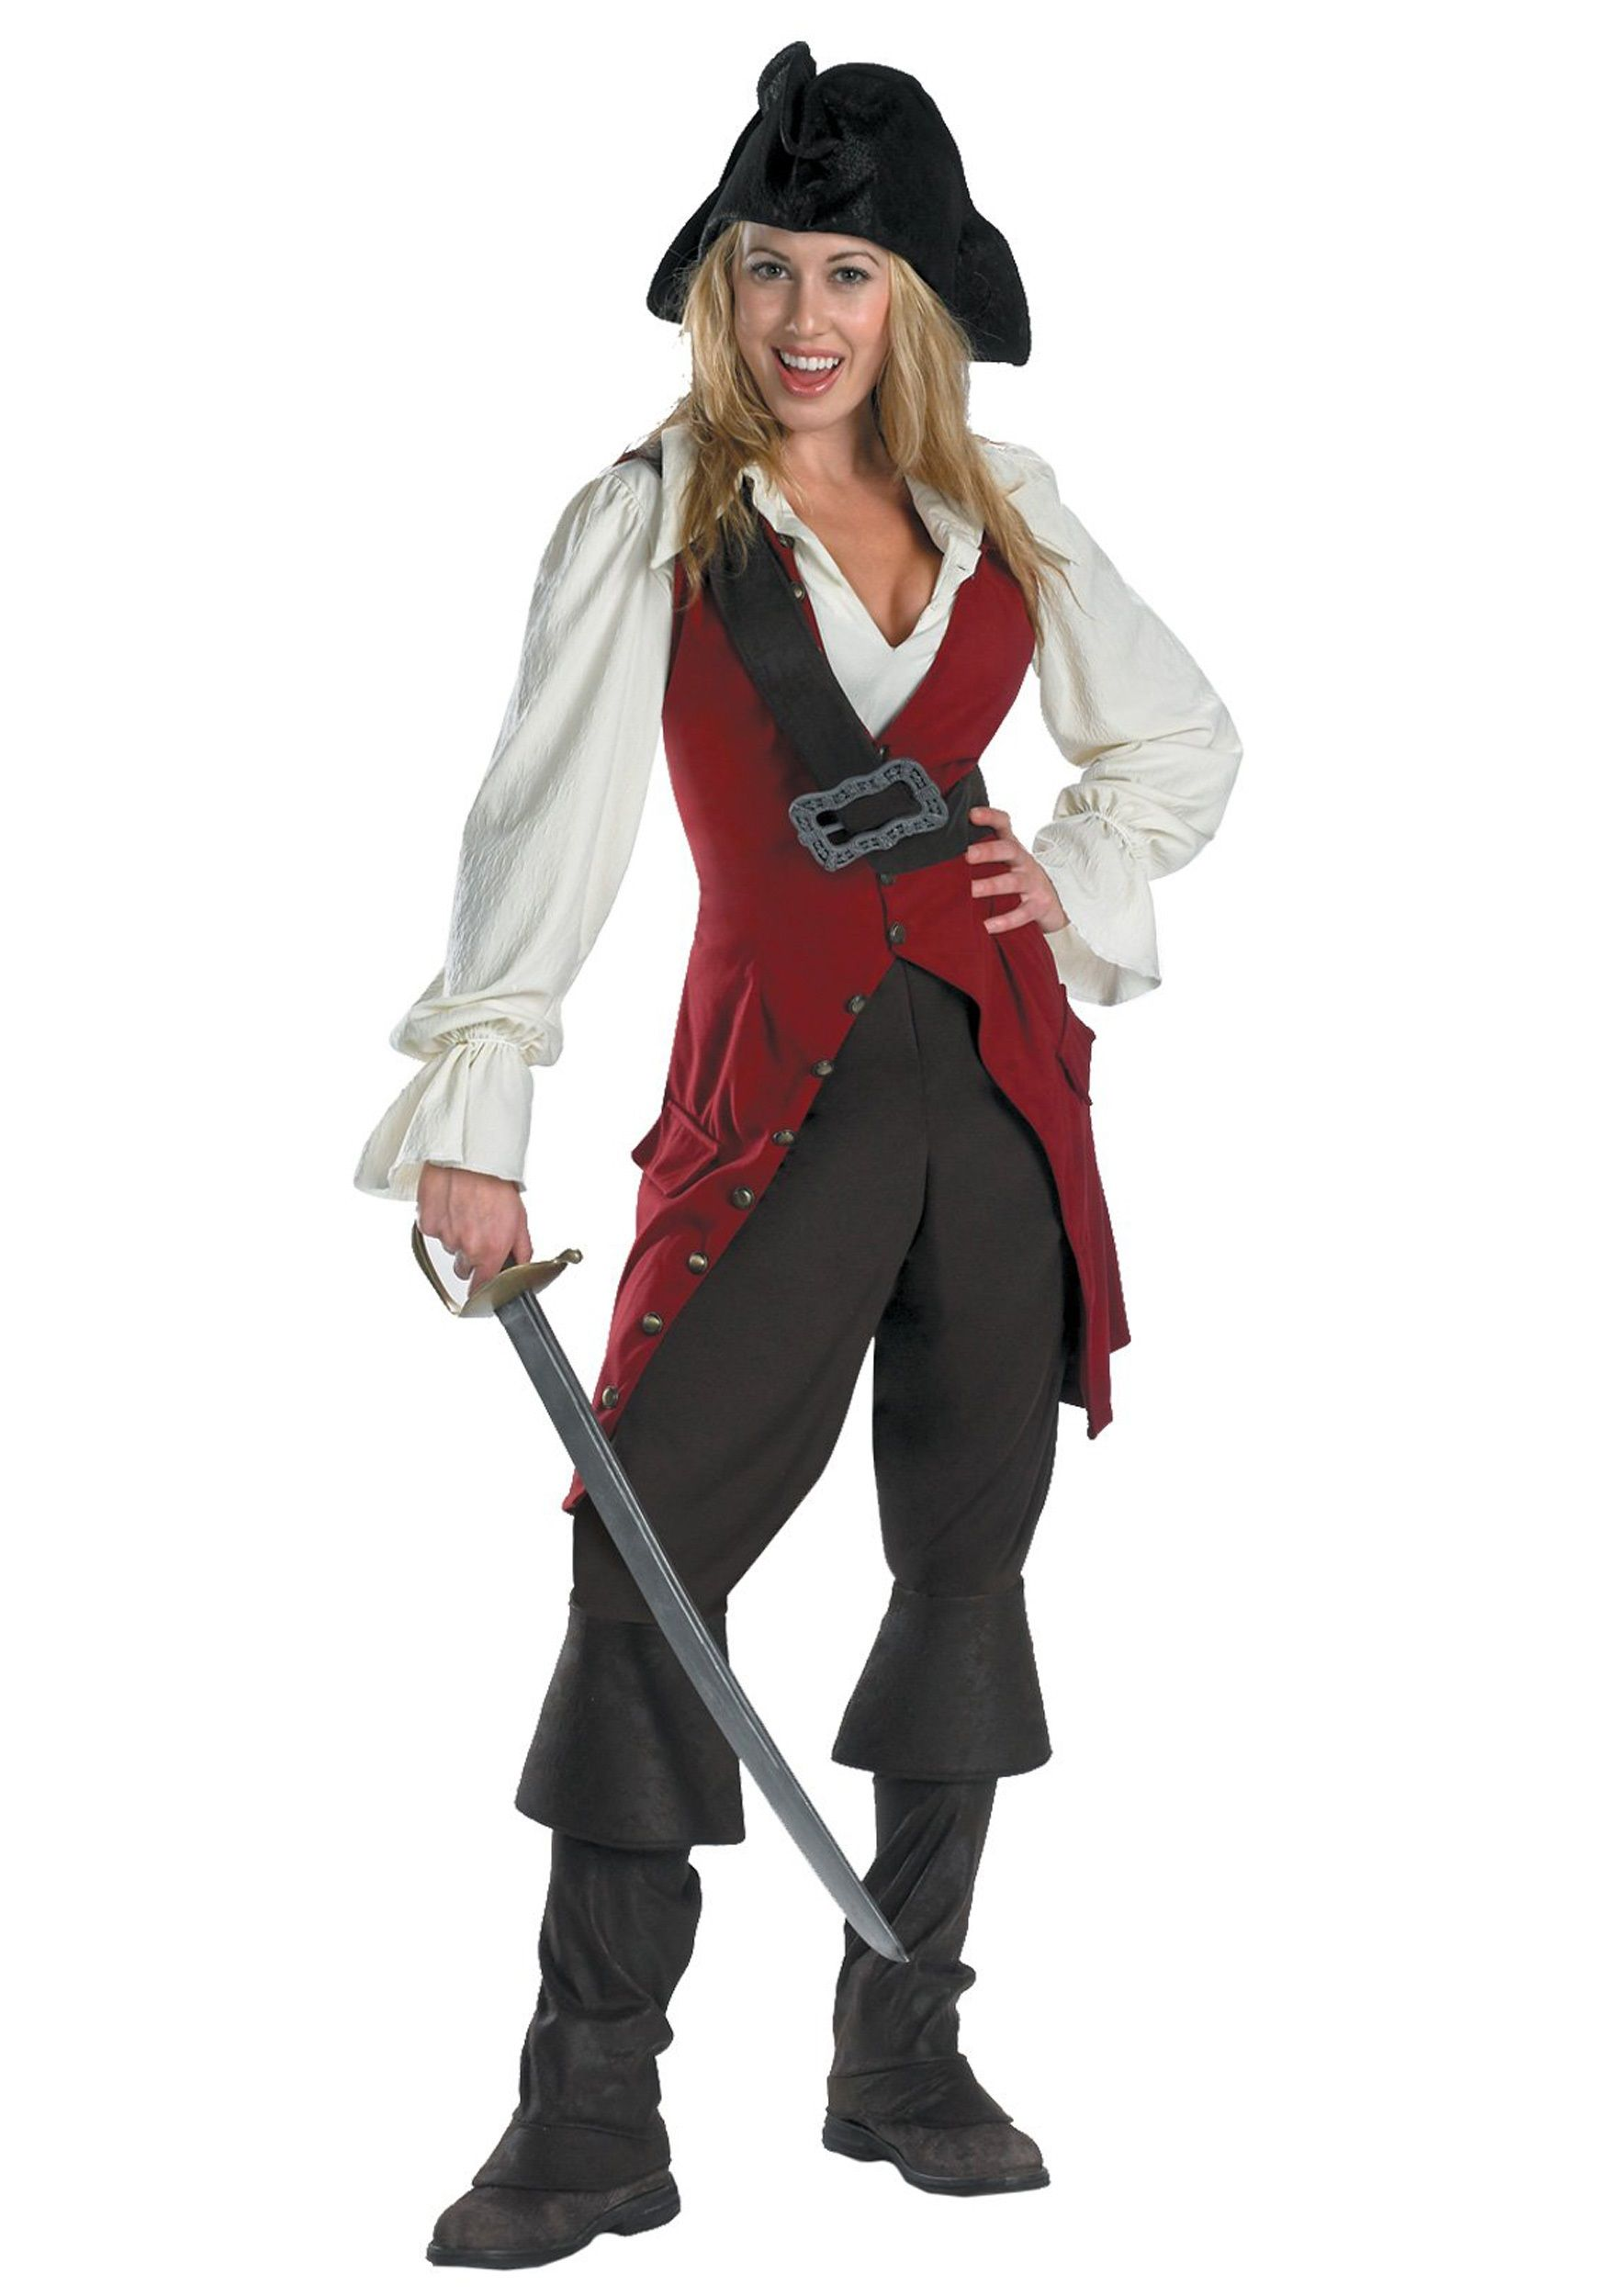 elizabeth swann and will turner costumes - Google Search ...